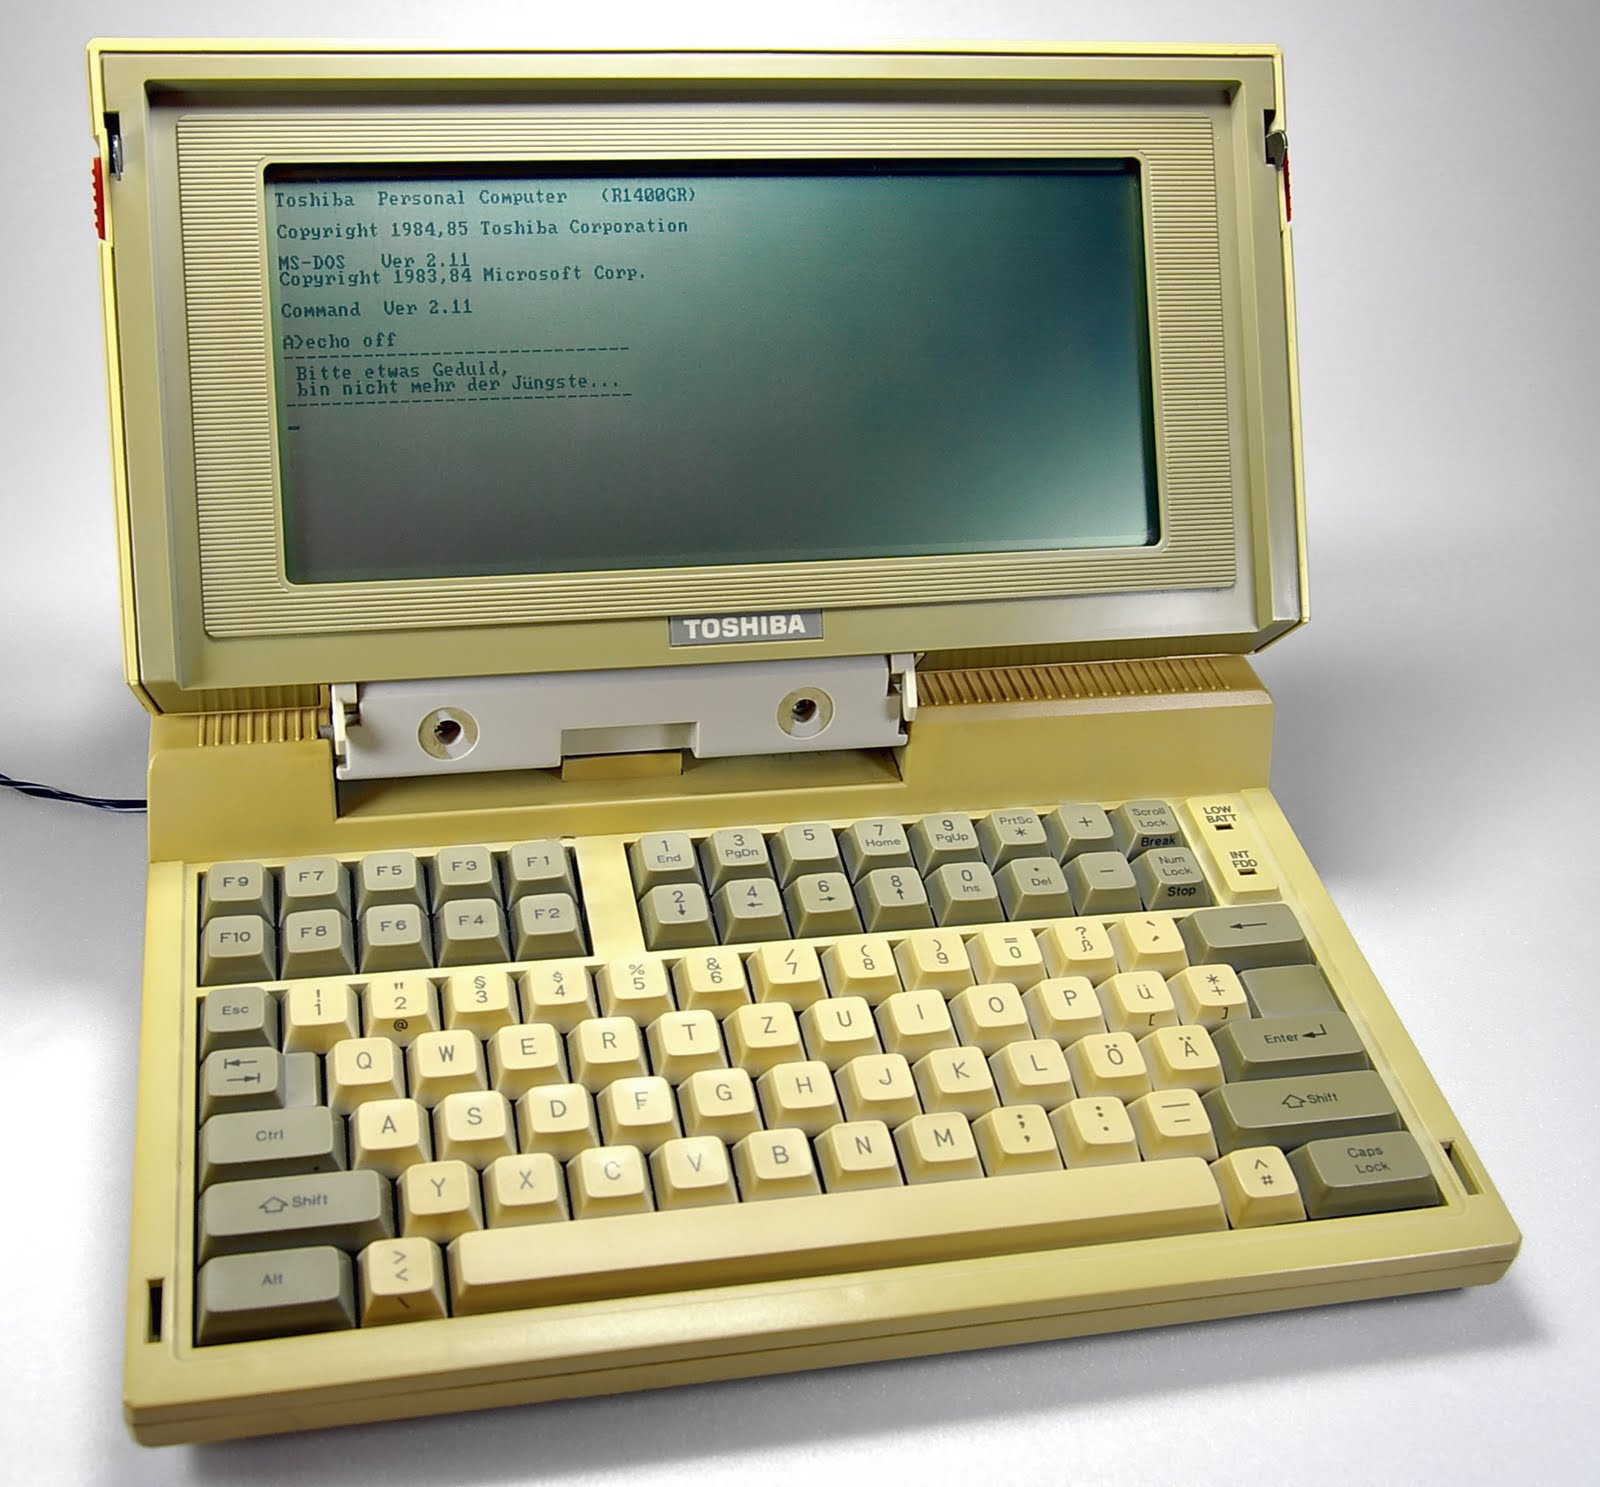 Toshiba T1100 In Betrieb Worlds first laptop, 25 years old and still running!